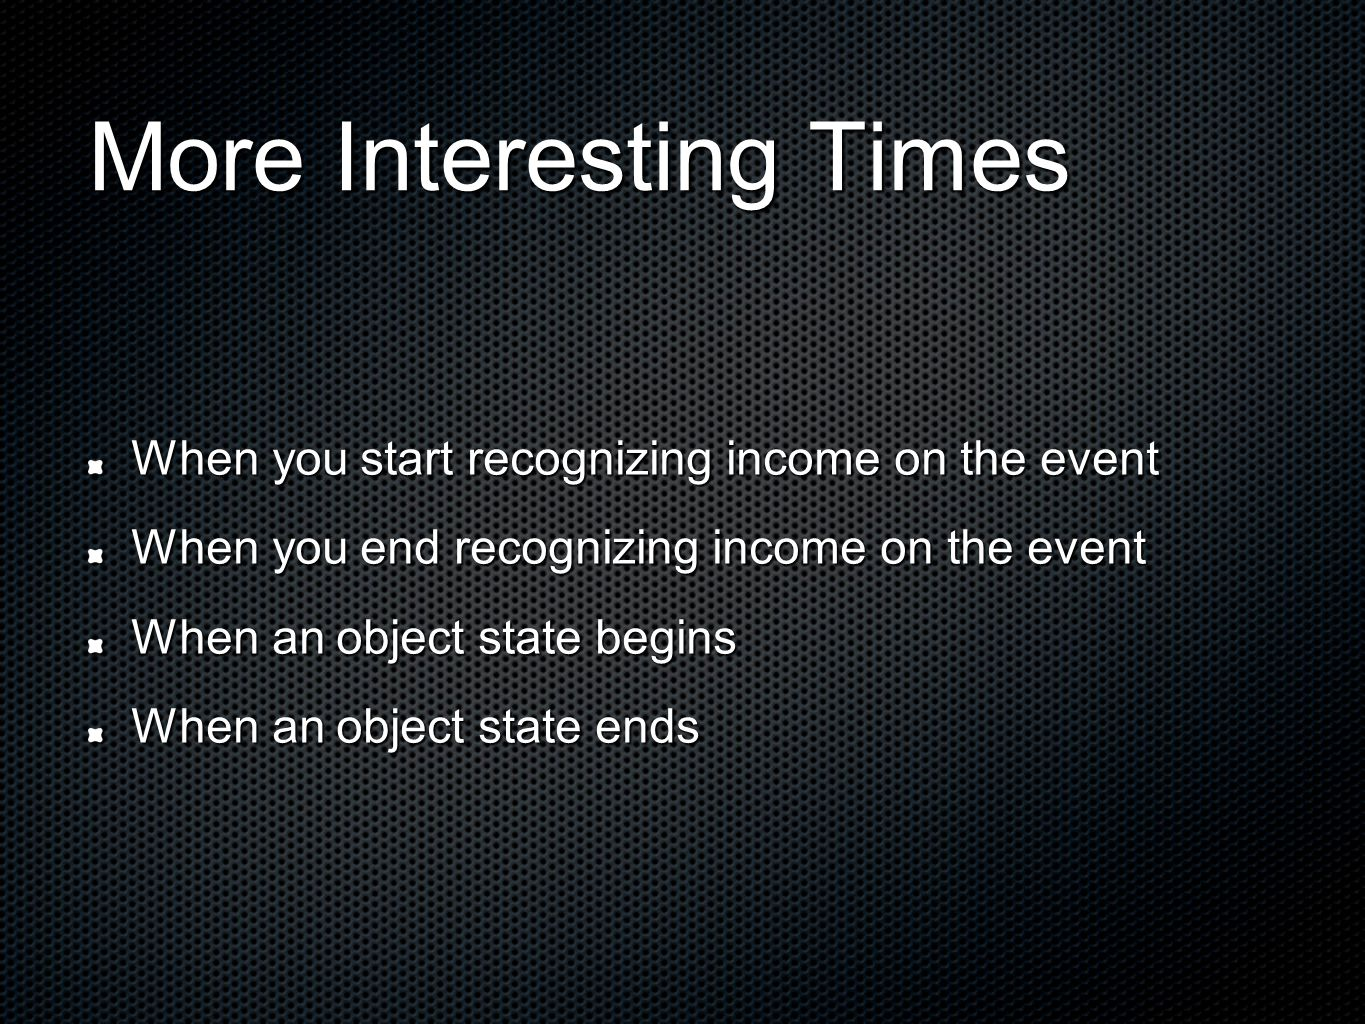 More Interesting Times When you start recognizing income on the event When you end recognizing income on the event When an object state begins When an object state ends